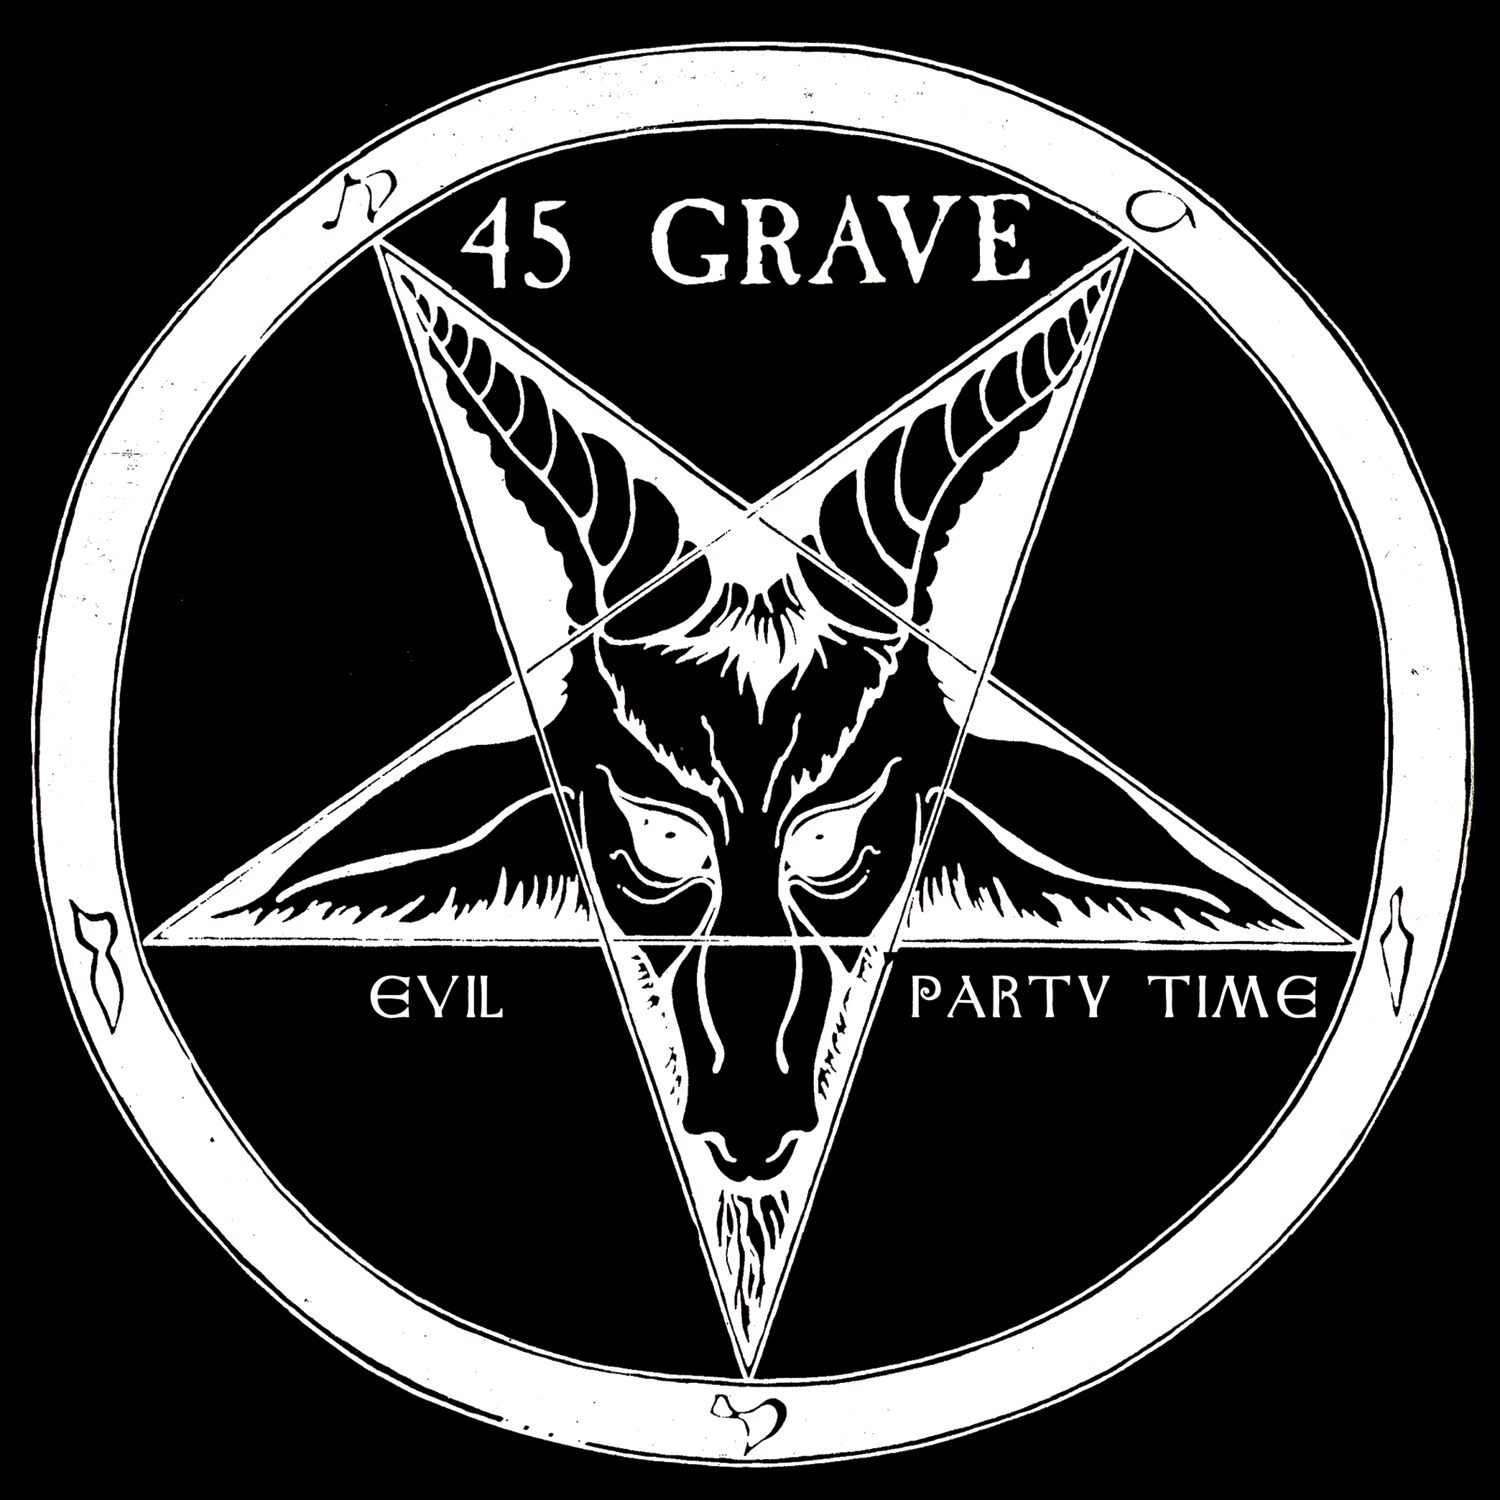 45 Grave Evil Party Time 7 Ep Cleopatra Records Store